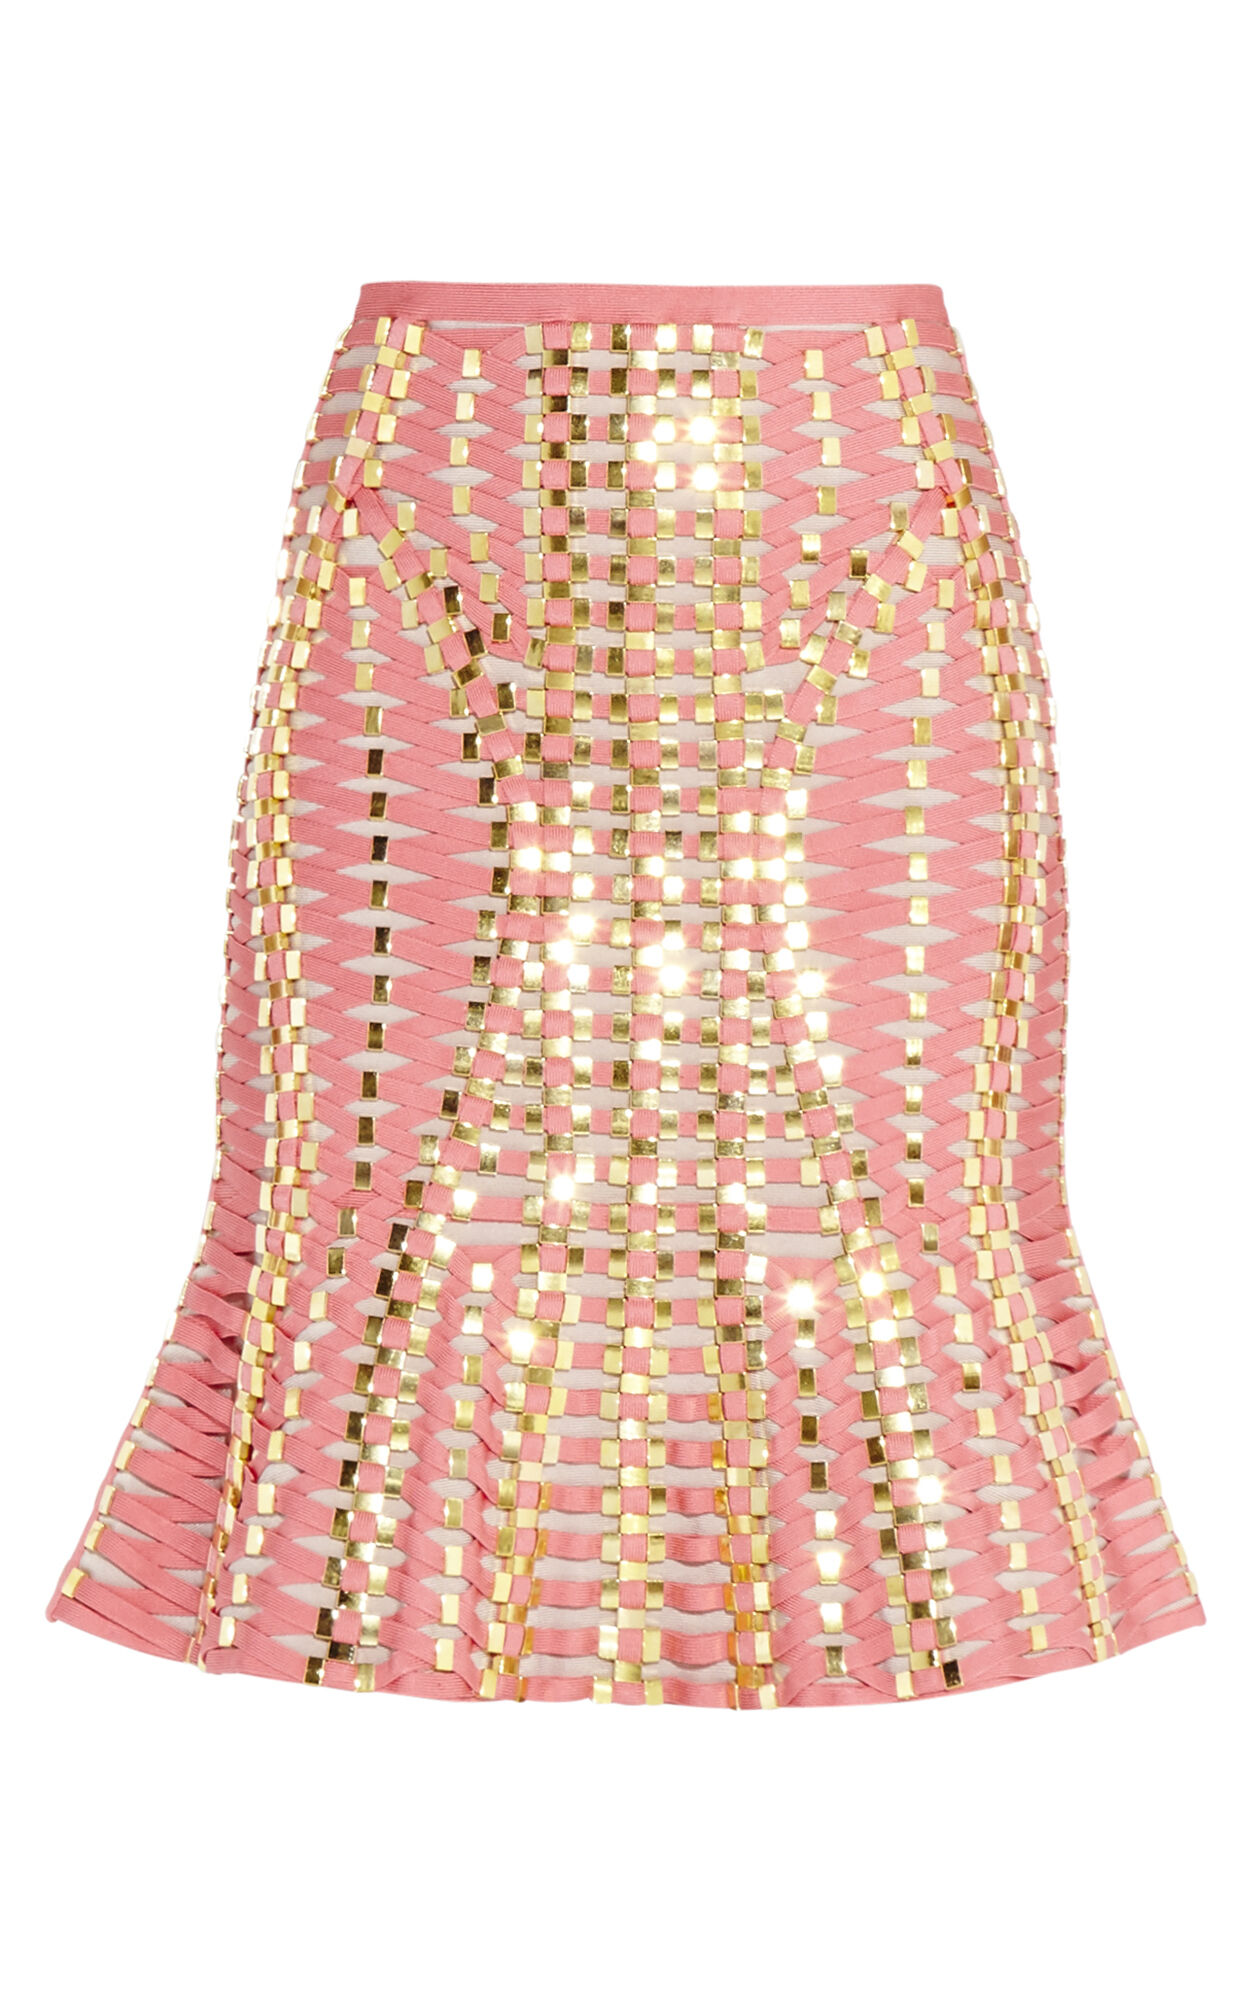 Hayleigh Lace-Up Beaded Bandage Skirt